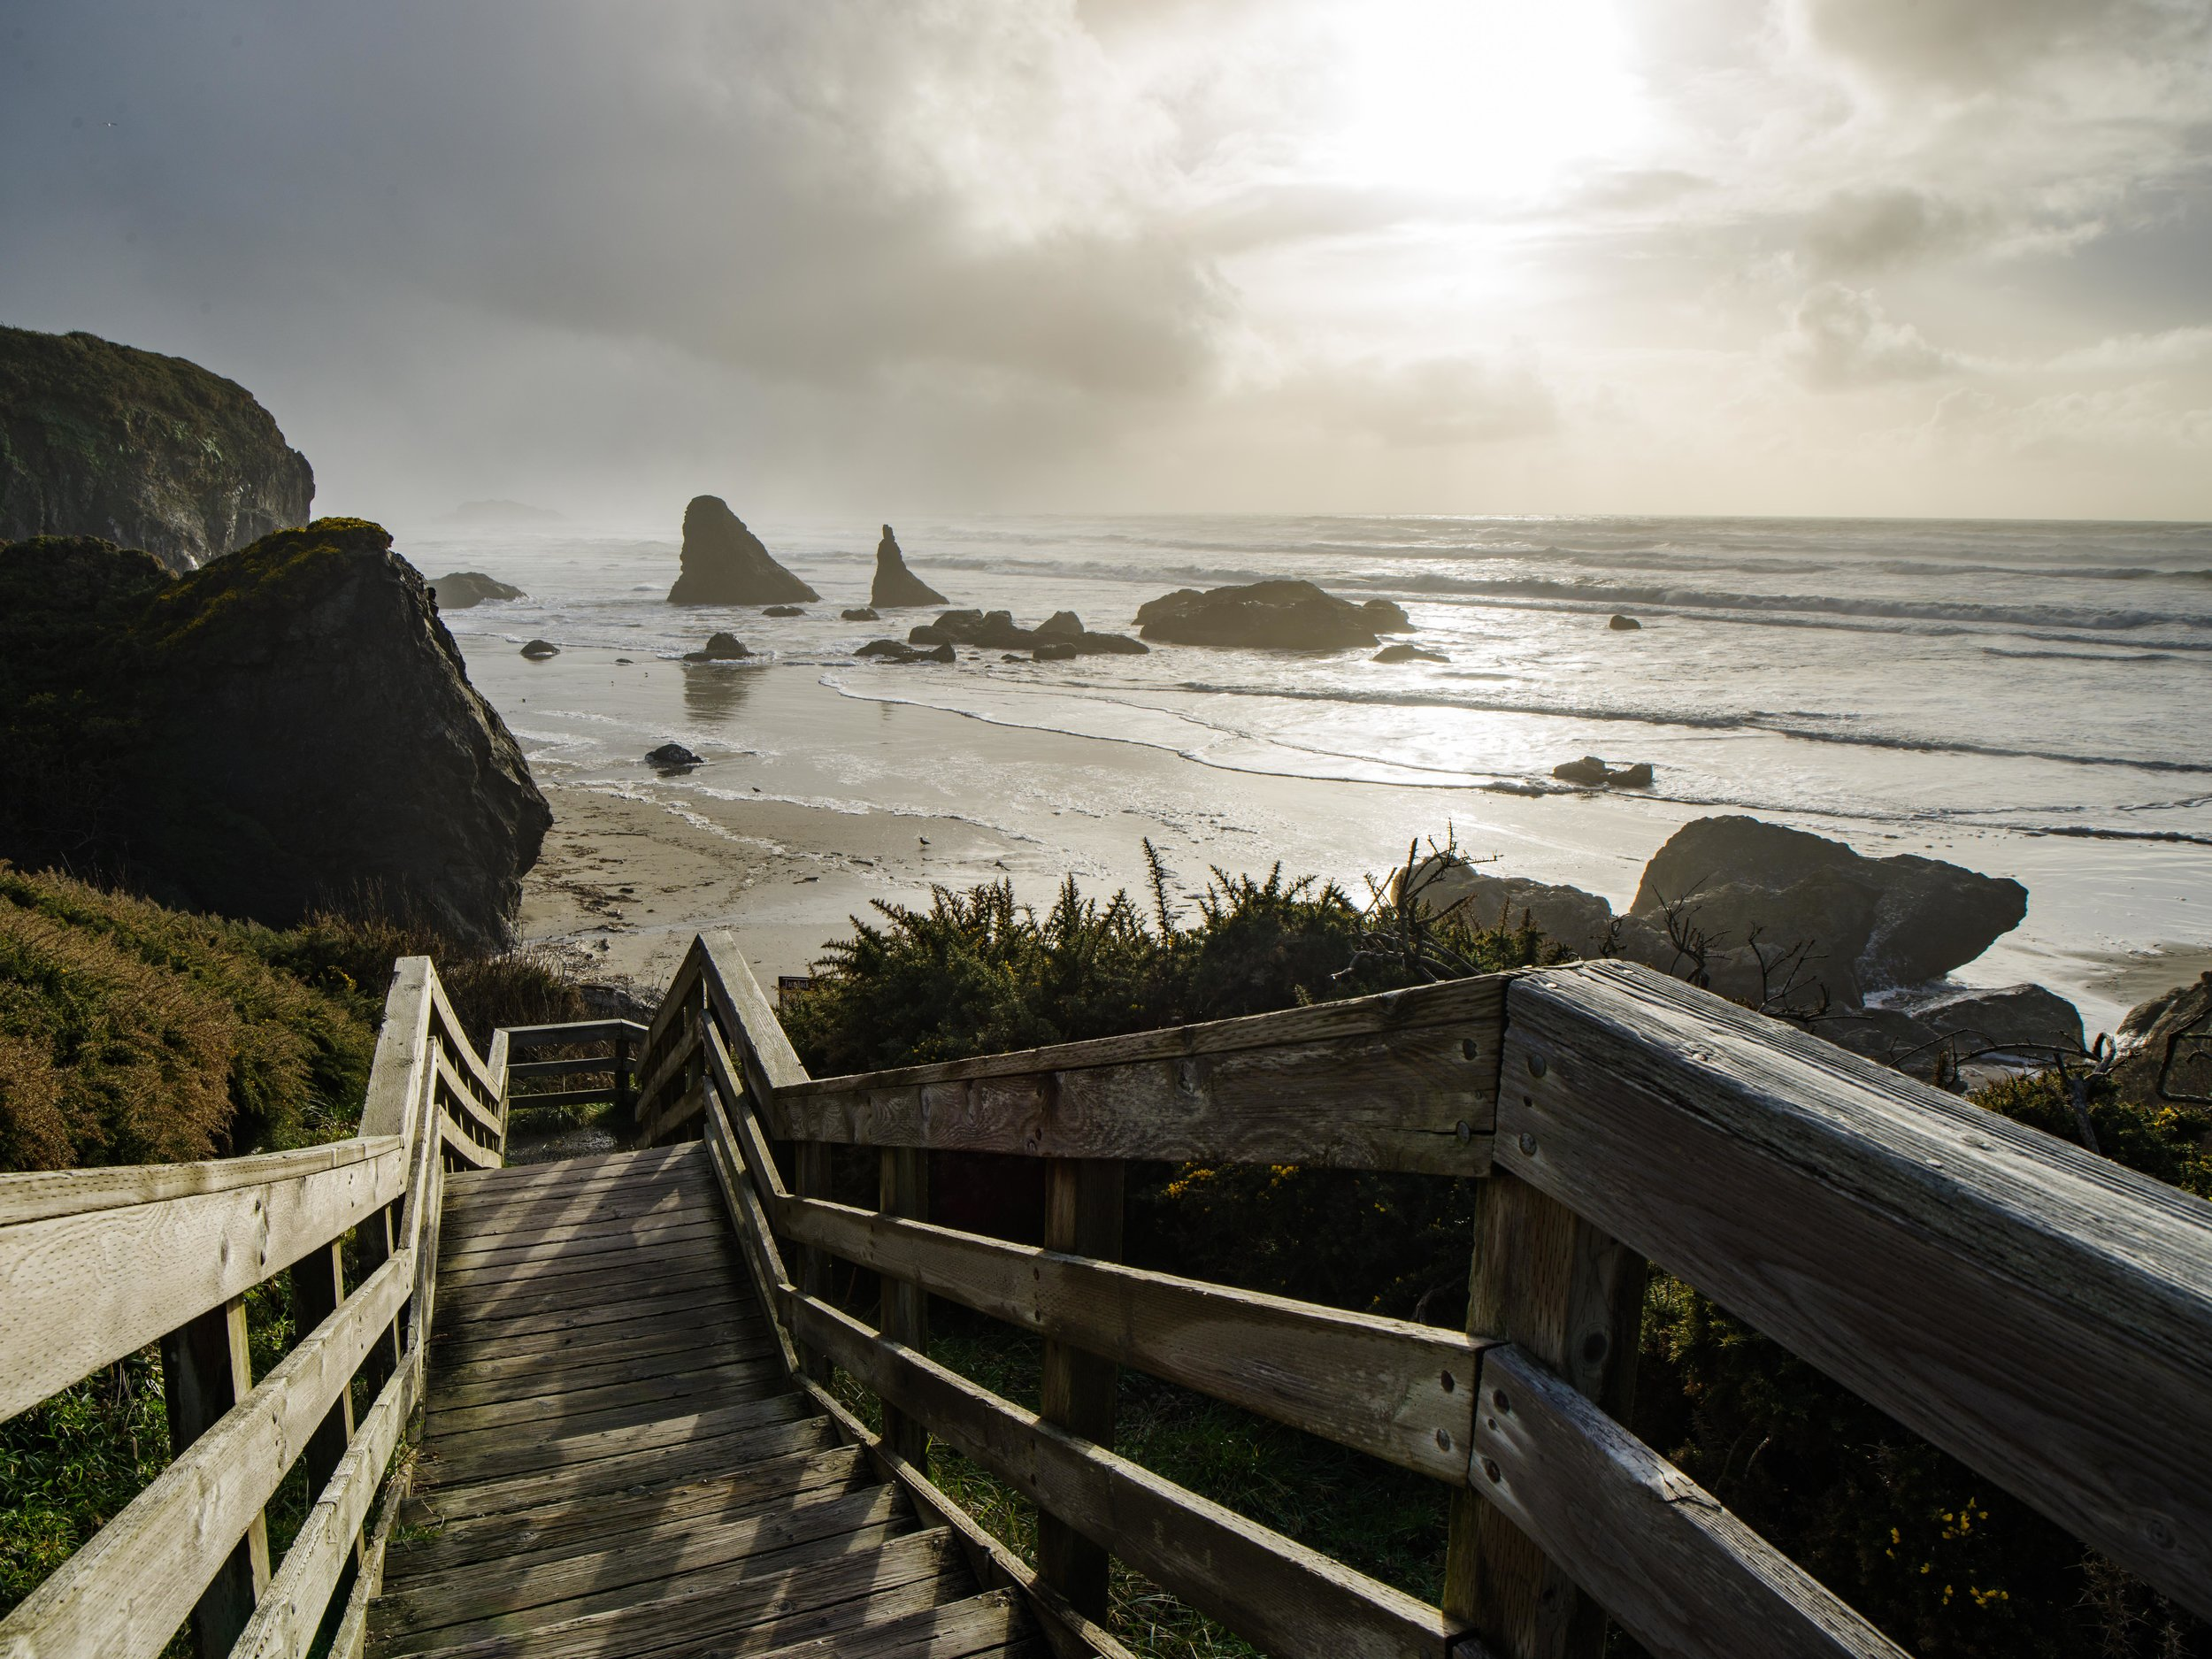 Walkway to Bandon Beach in Oregon from the parking lot | Photo by Jonathan Irish